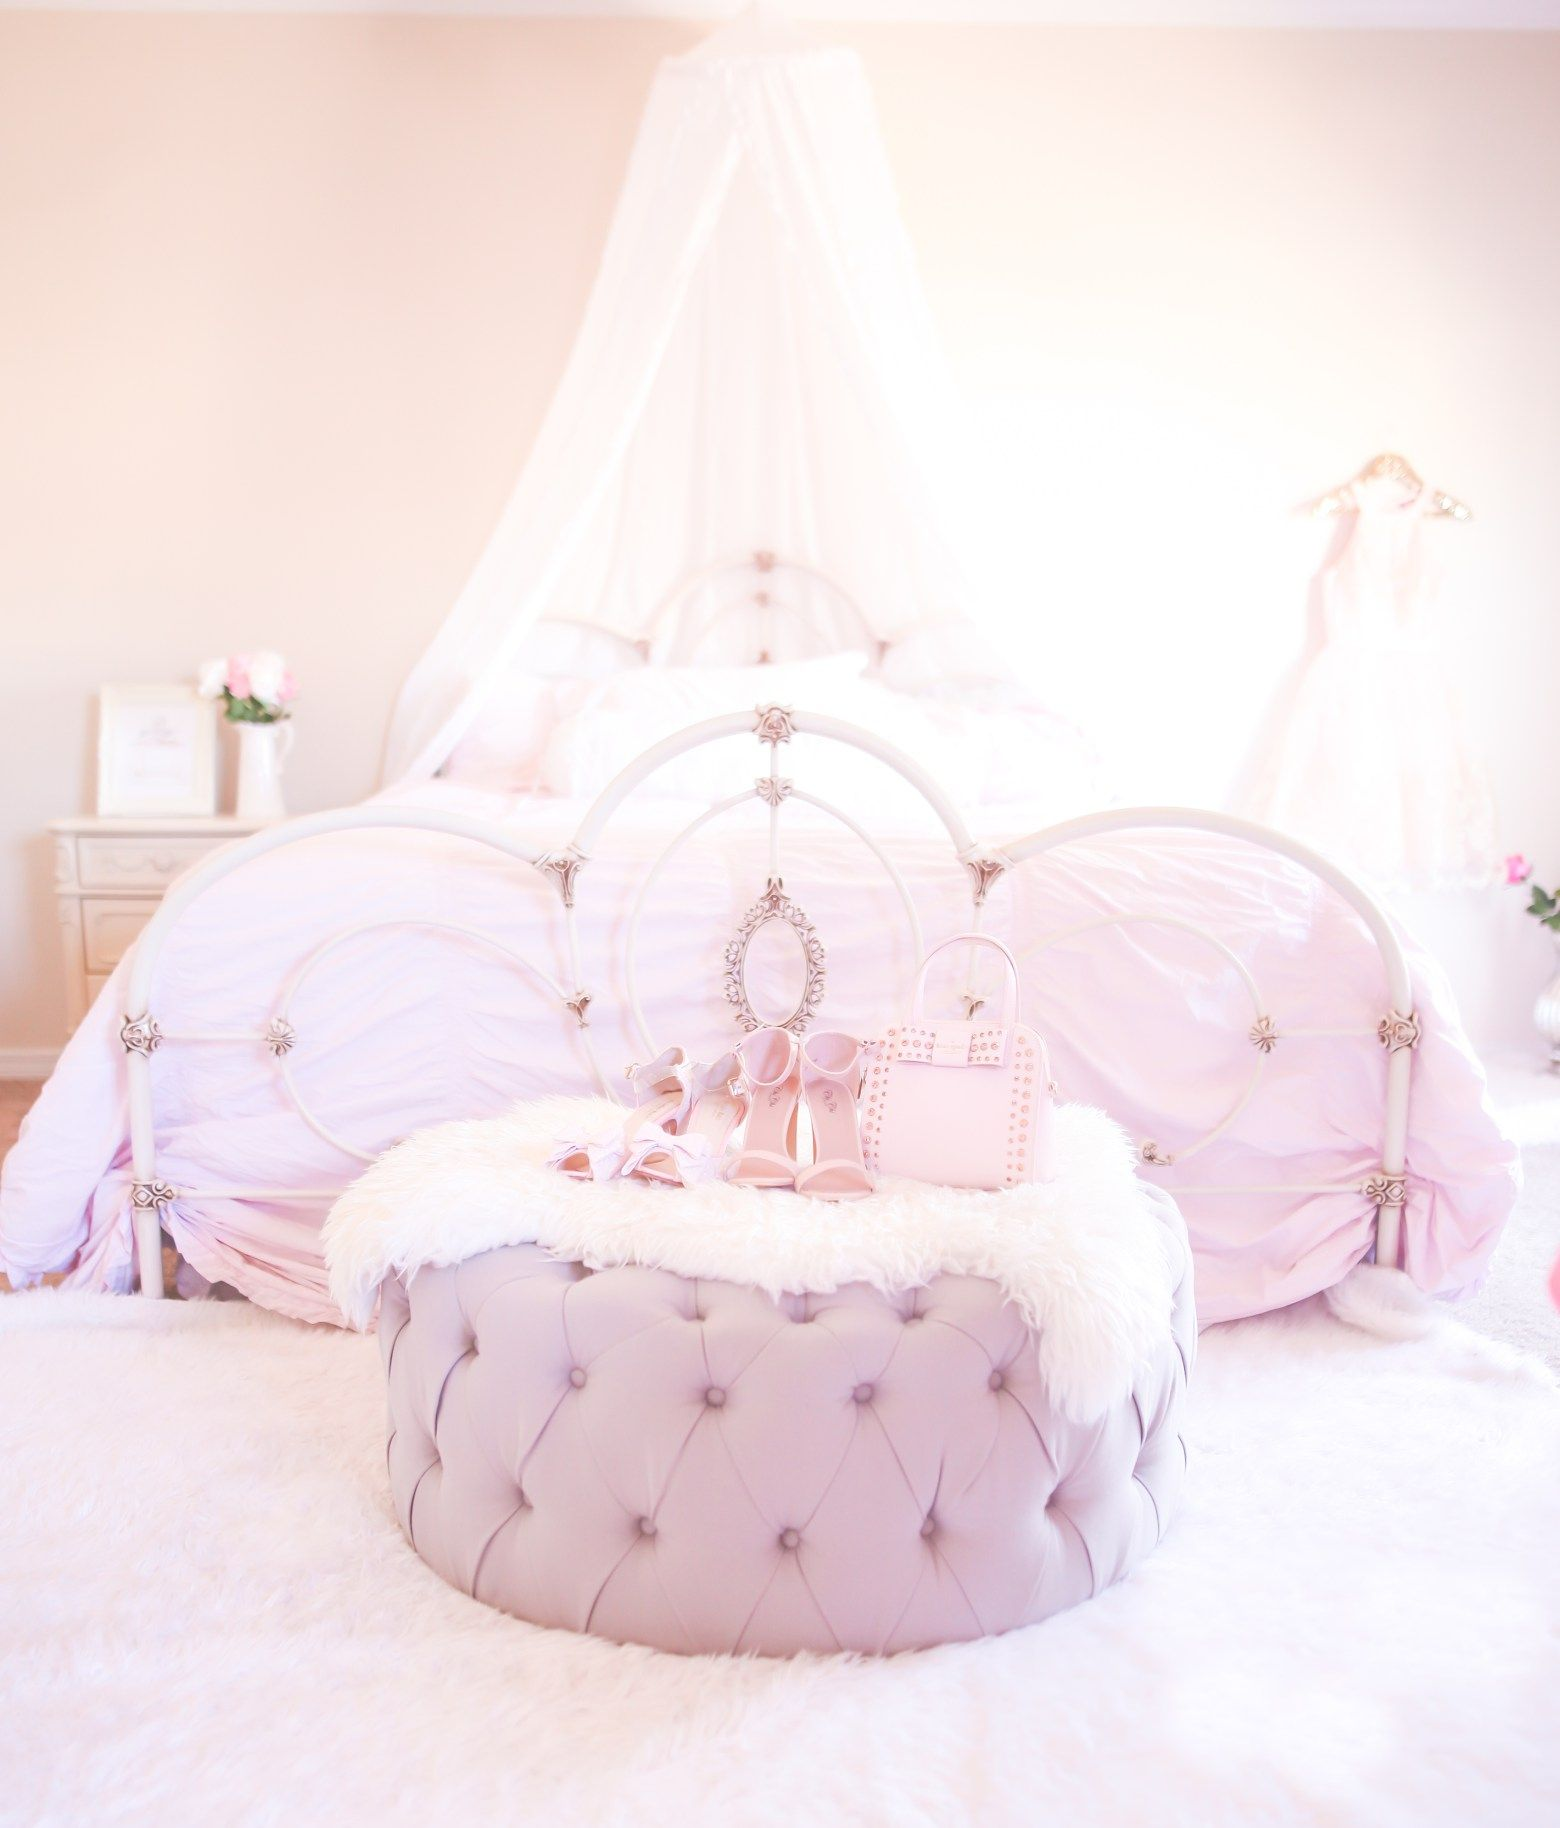 Girly Bedroom Decor Pinterest: 5 Must-Haves For A Beautiful & Feminine Bedroom